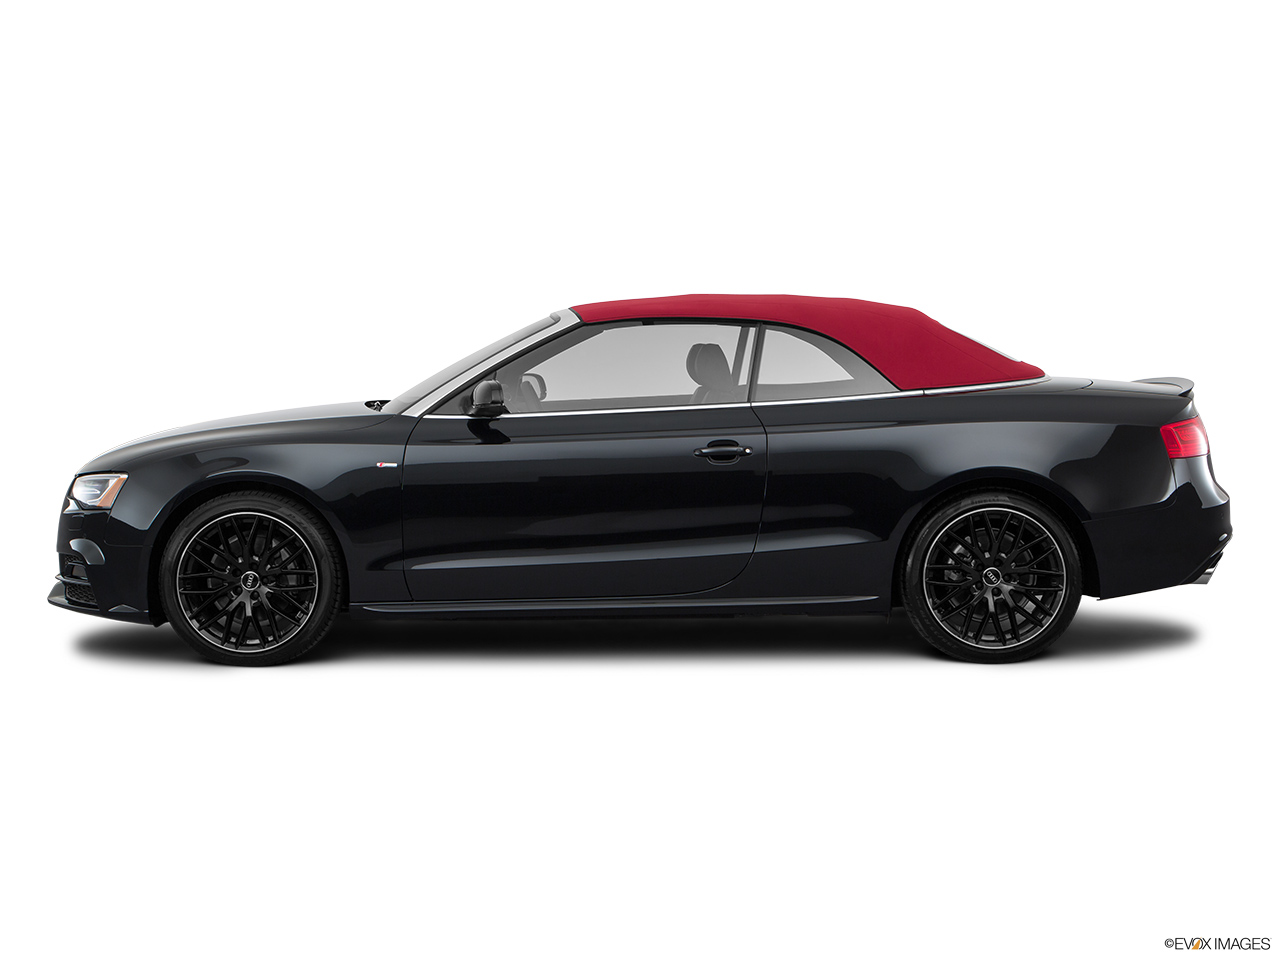 2017 Audi A5 Sport Cabriolet 2.0 TFSI Drivers side profile, convertible top up (convertibles only).